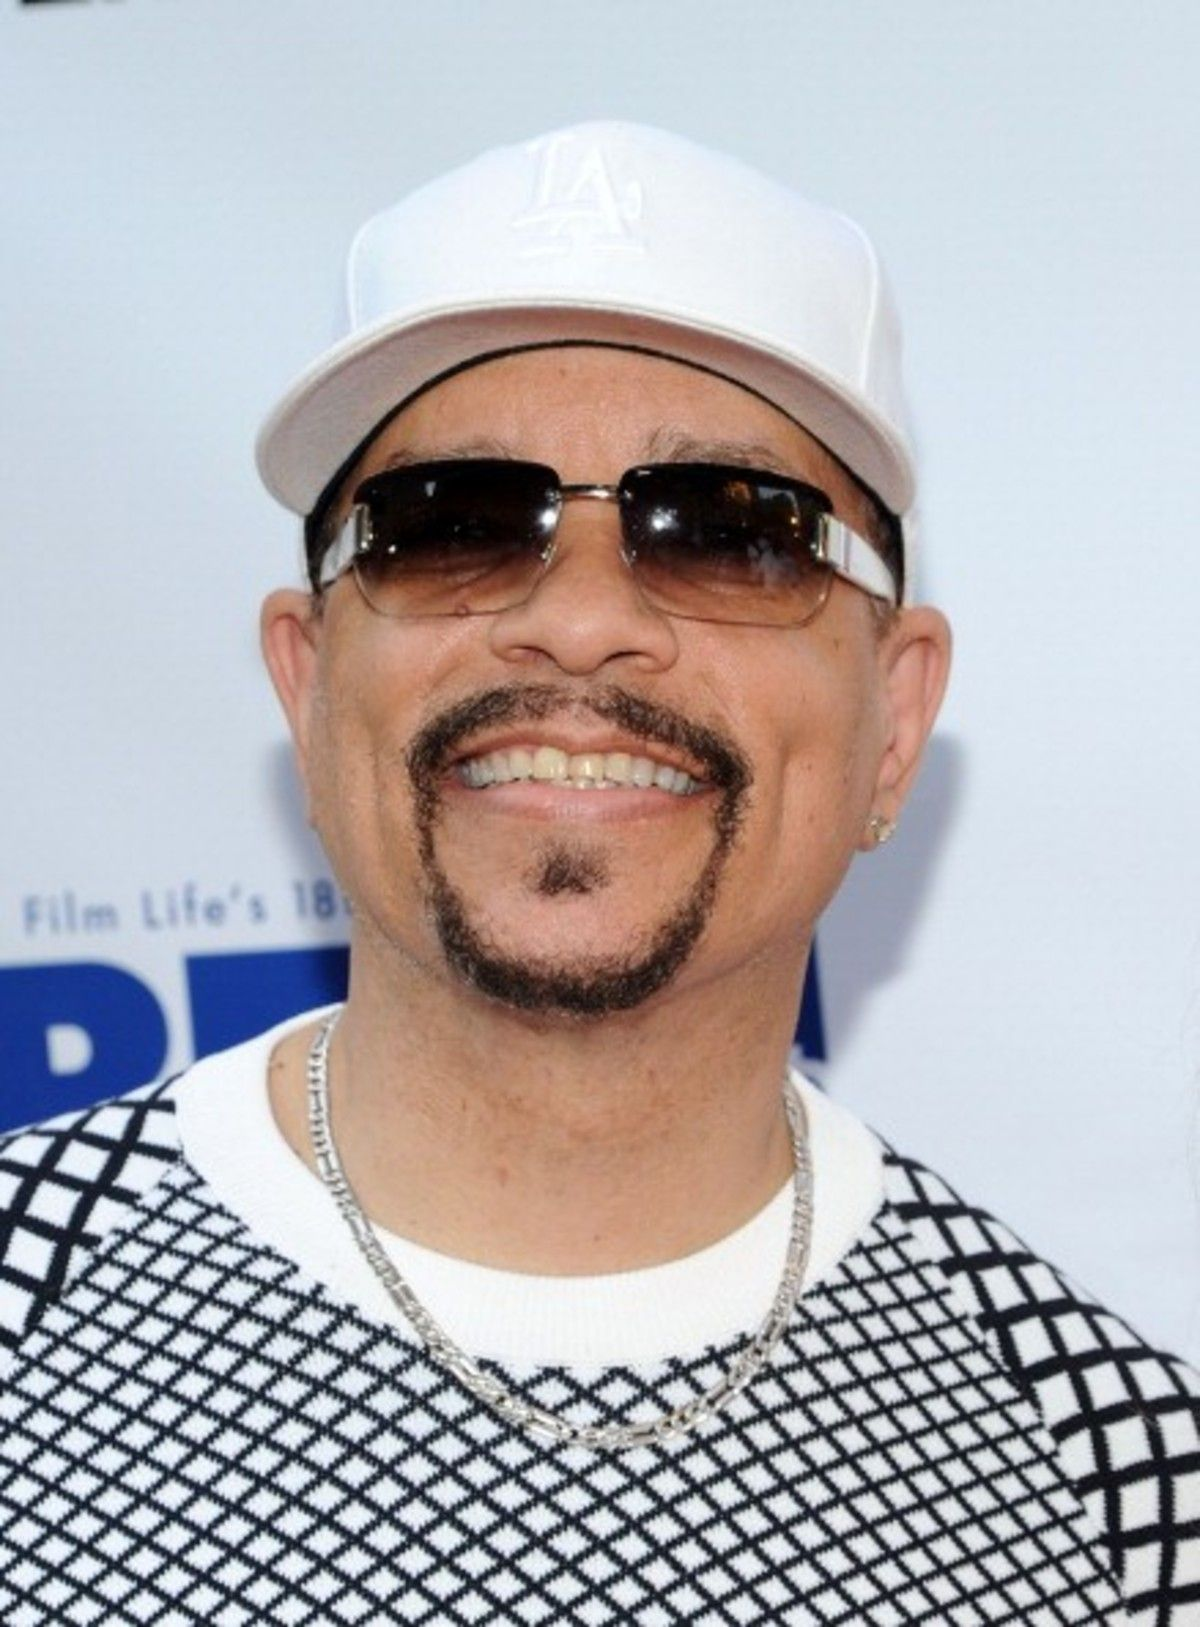 ♫ Happy Birthday To American Musician, Rapper, Songwriter, Actor, Record Producer, and Author, Ice-T ♫ He Is Celebrating His 62nd Birthday, Today! 02/16 #HappyBirthday #IceT #Rapper